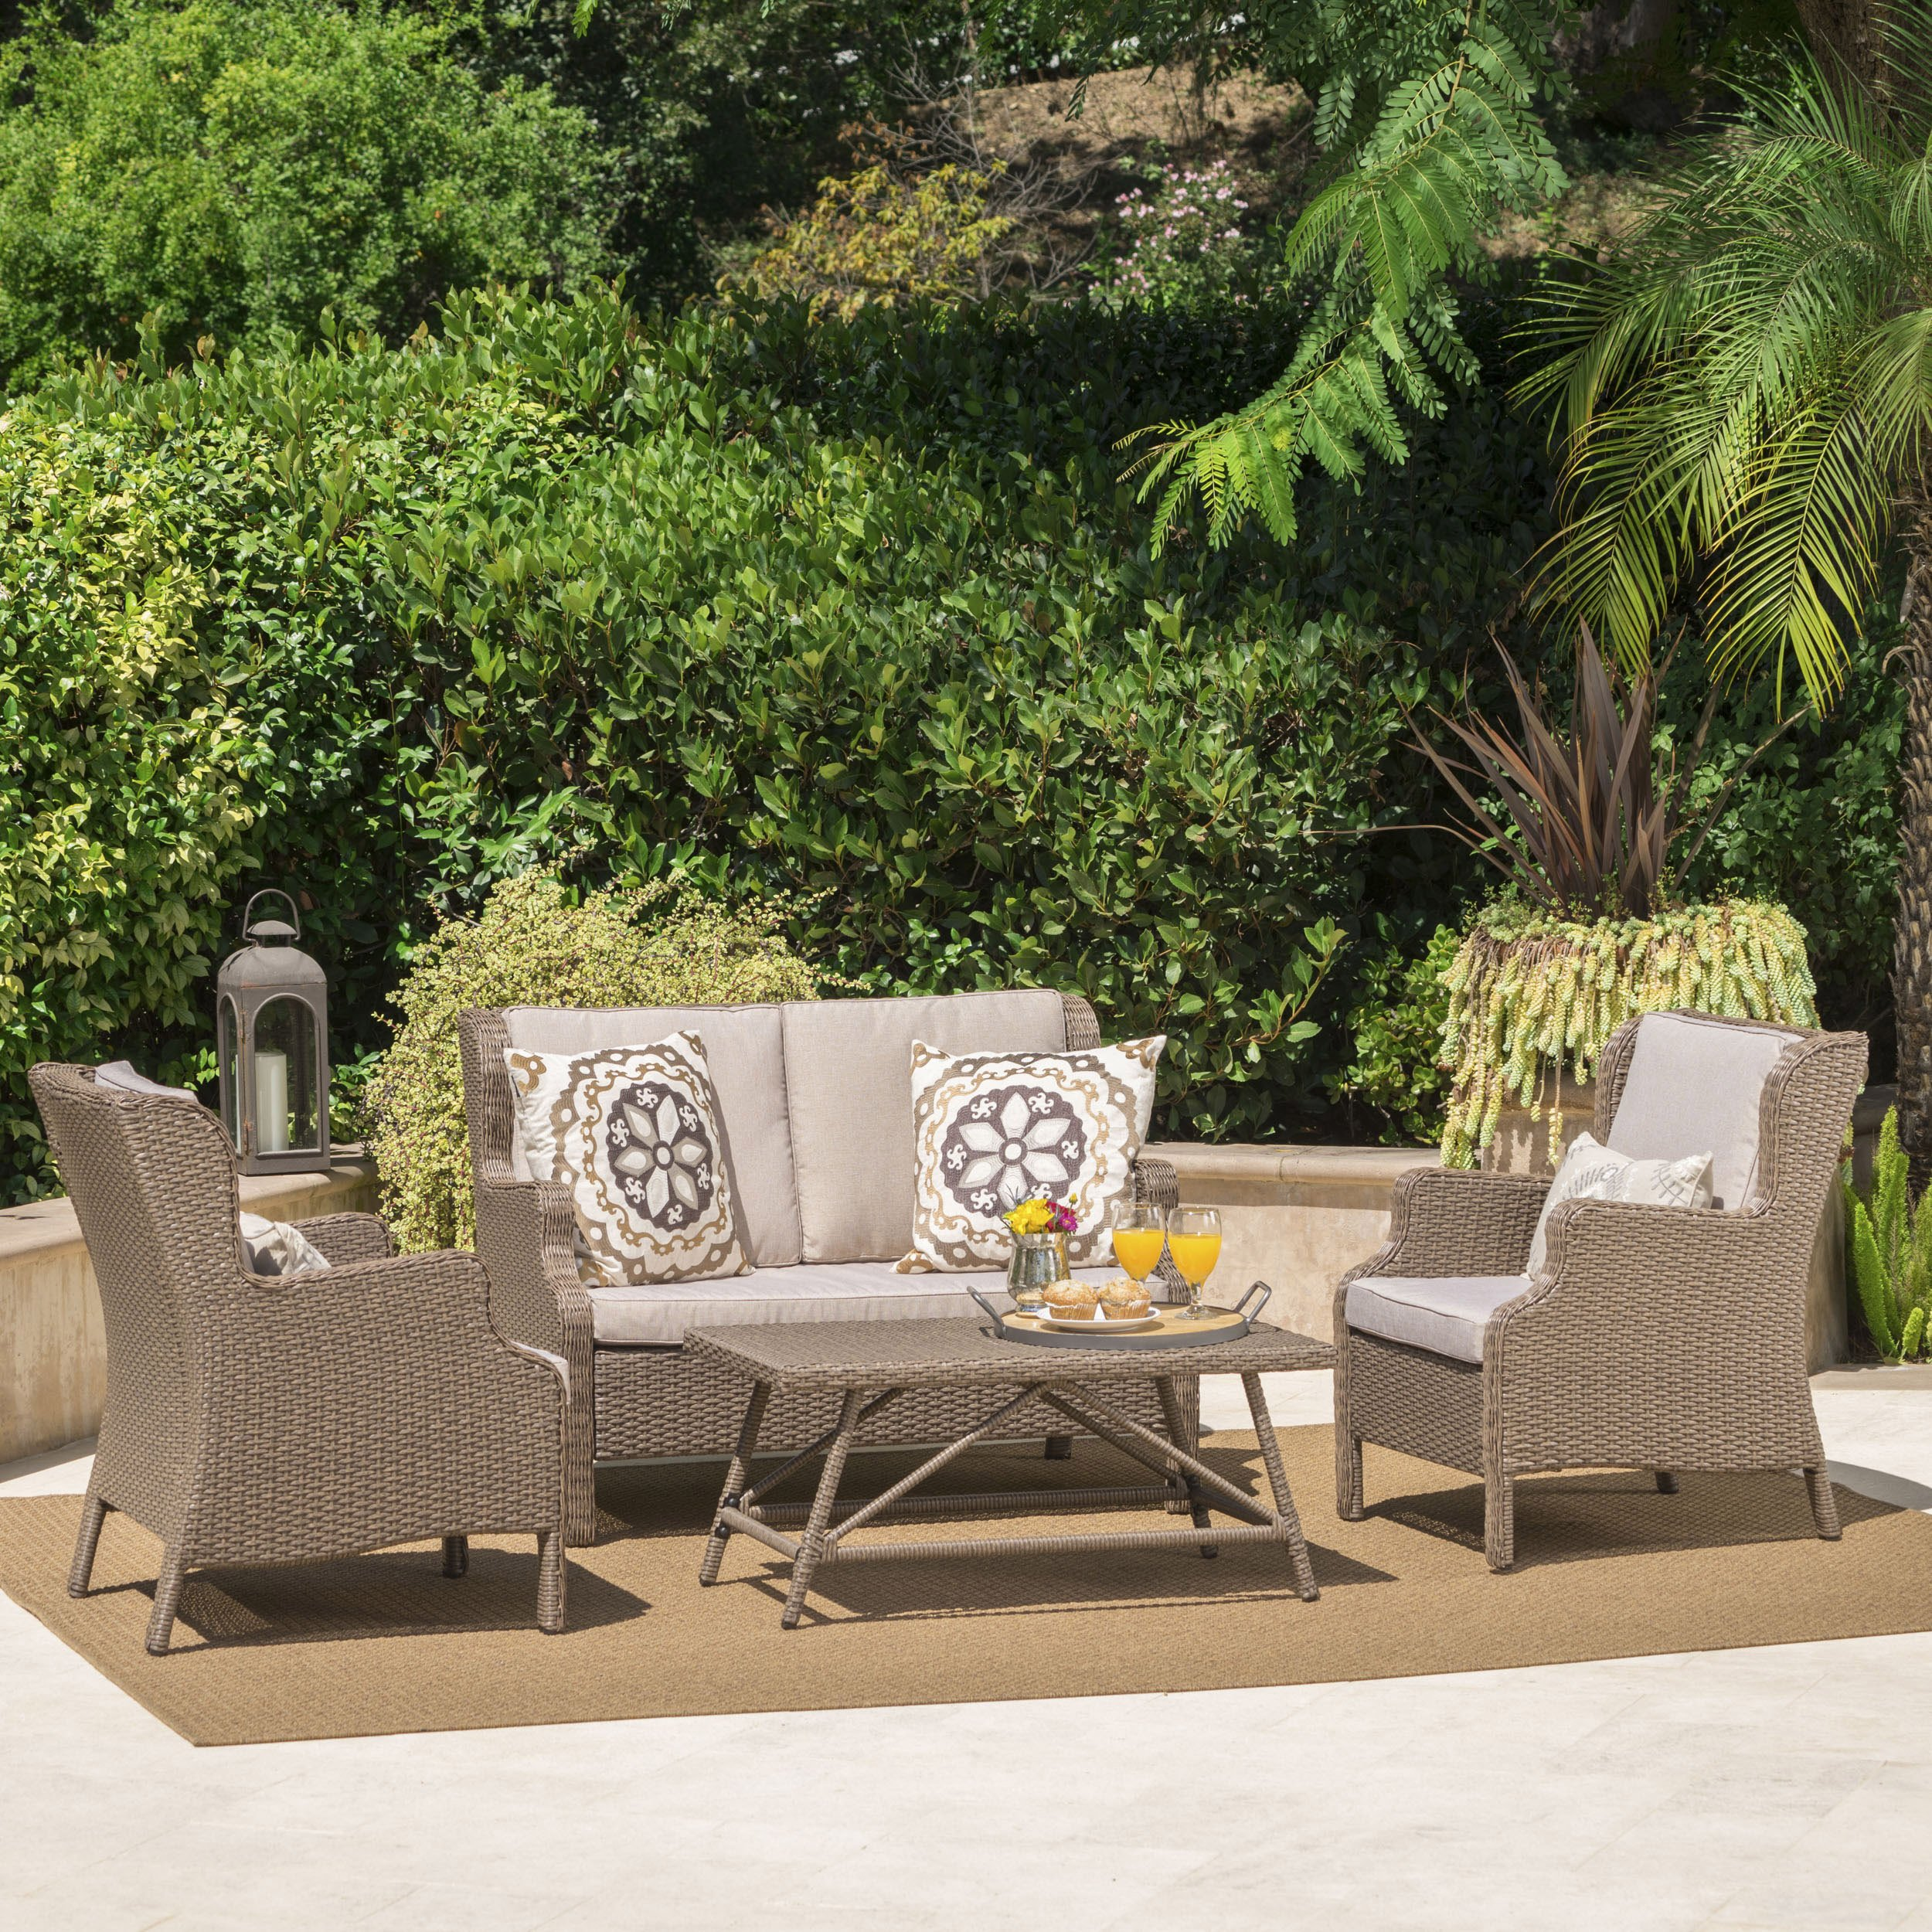 Lantana Outdoor 4 Piece Light Brown Wicker Chat Set with Textured Beige Water Resistant Cushions by Great Deal Furniture